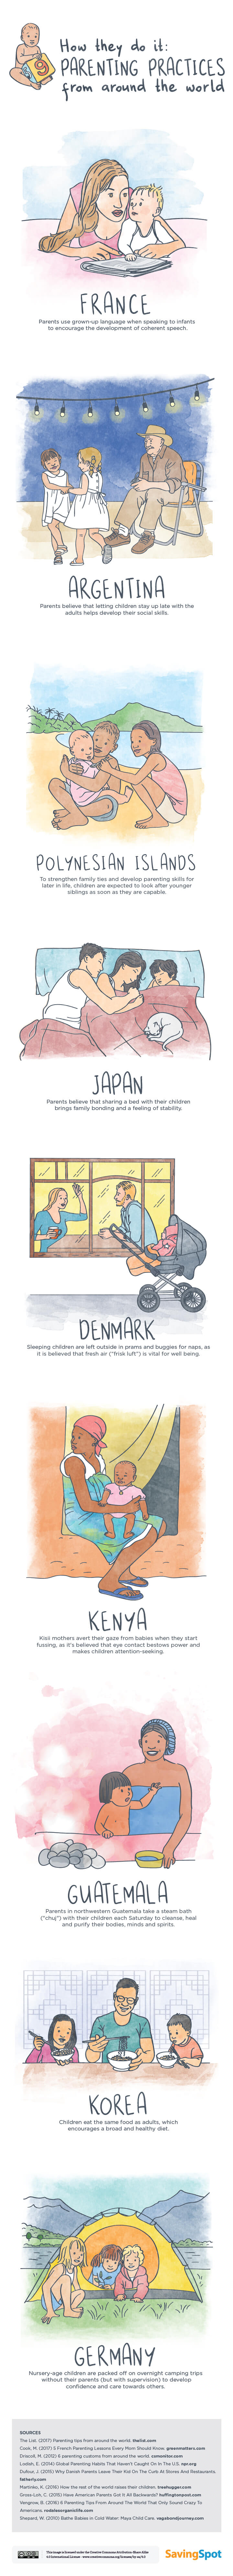 It Takes a Village to Raise a Child: 9 Parenting Practices from Different Countries - Infographic